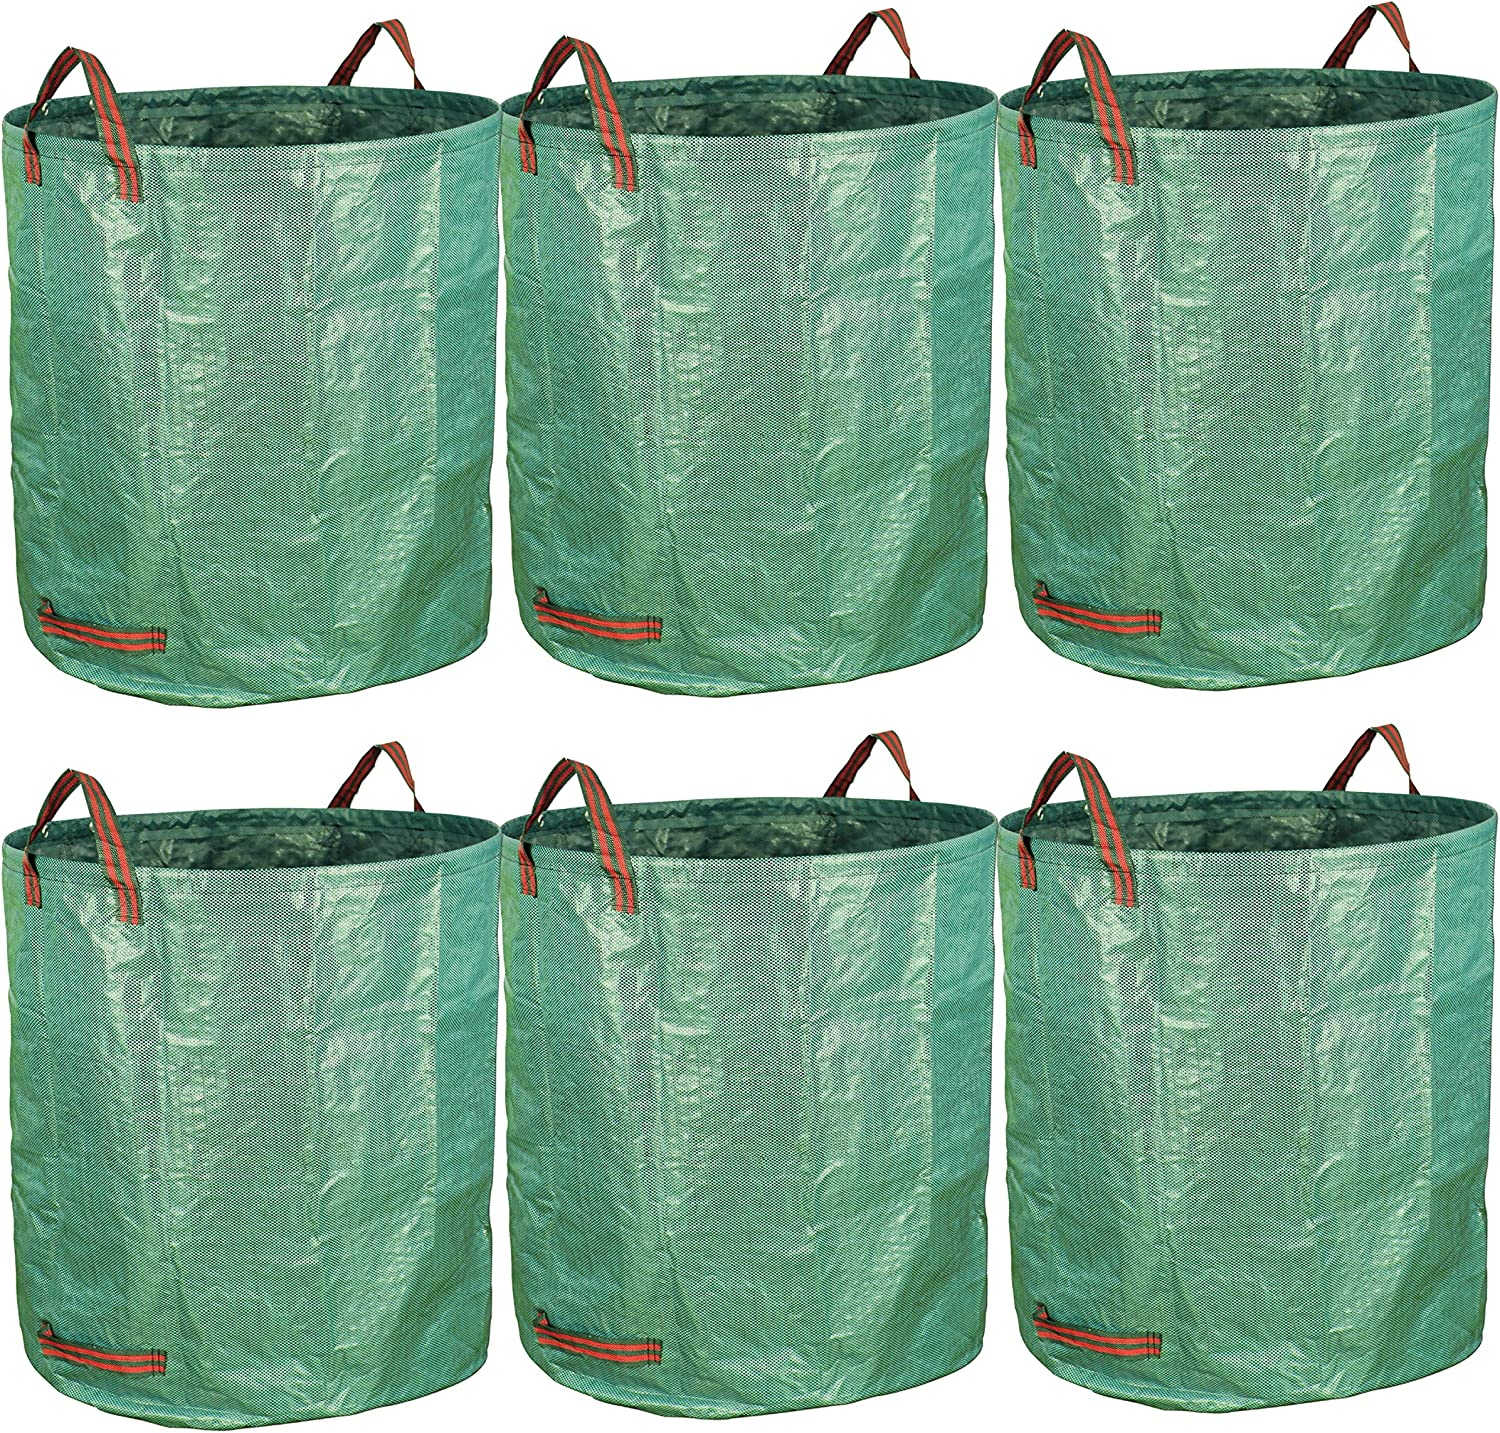 Gardzen 6-Pack 80 Gallon Garden Bag - Reuseable Heavy Duty Gardening Bags, Lawn Pool Garden Leaf Waste Bag